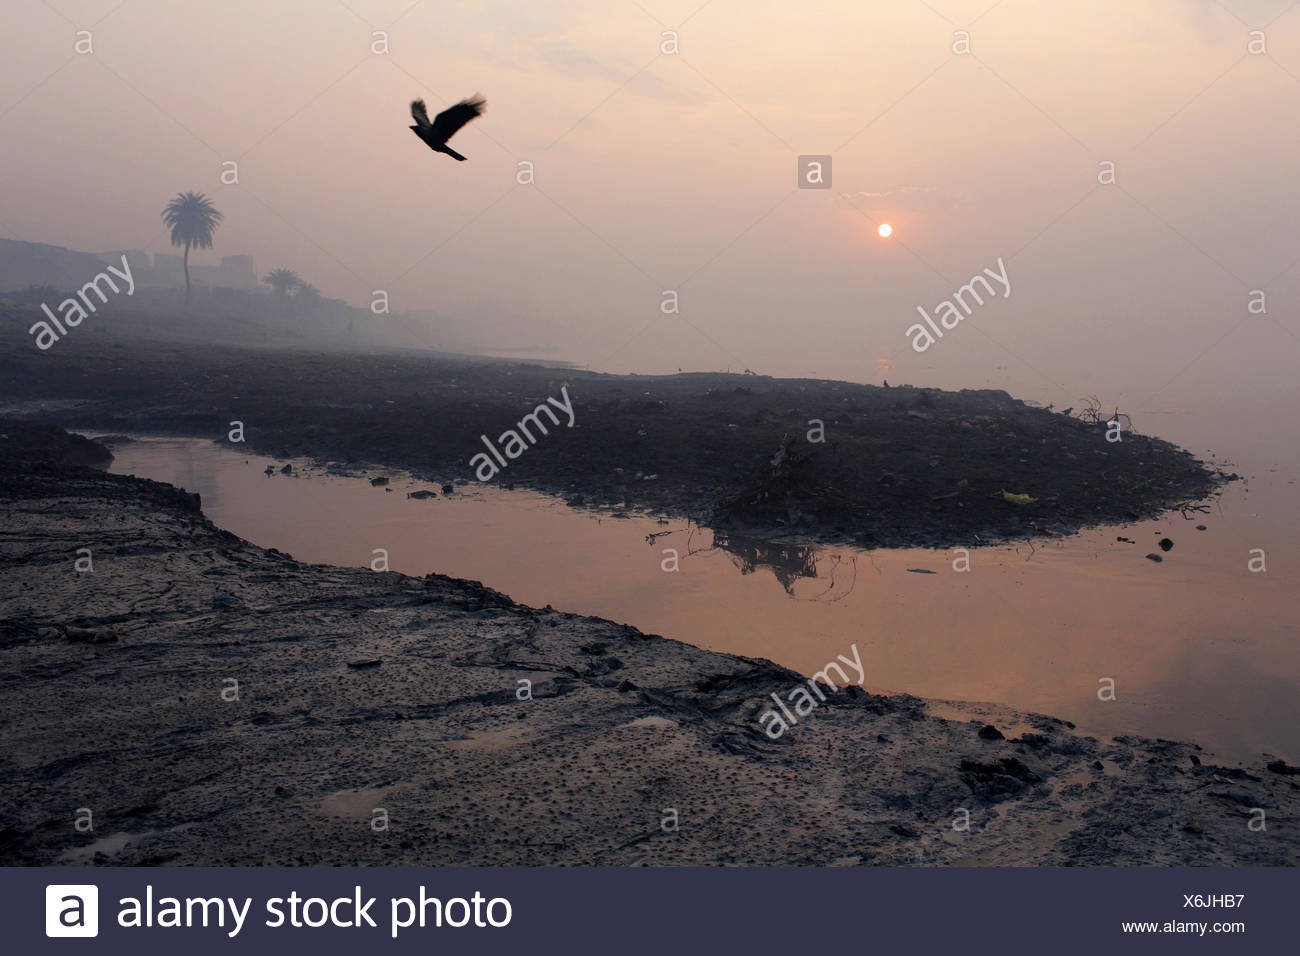 A bird flies over a polluted water channel that feeds into the Ganges River at Kanpur. - Stock Image